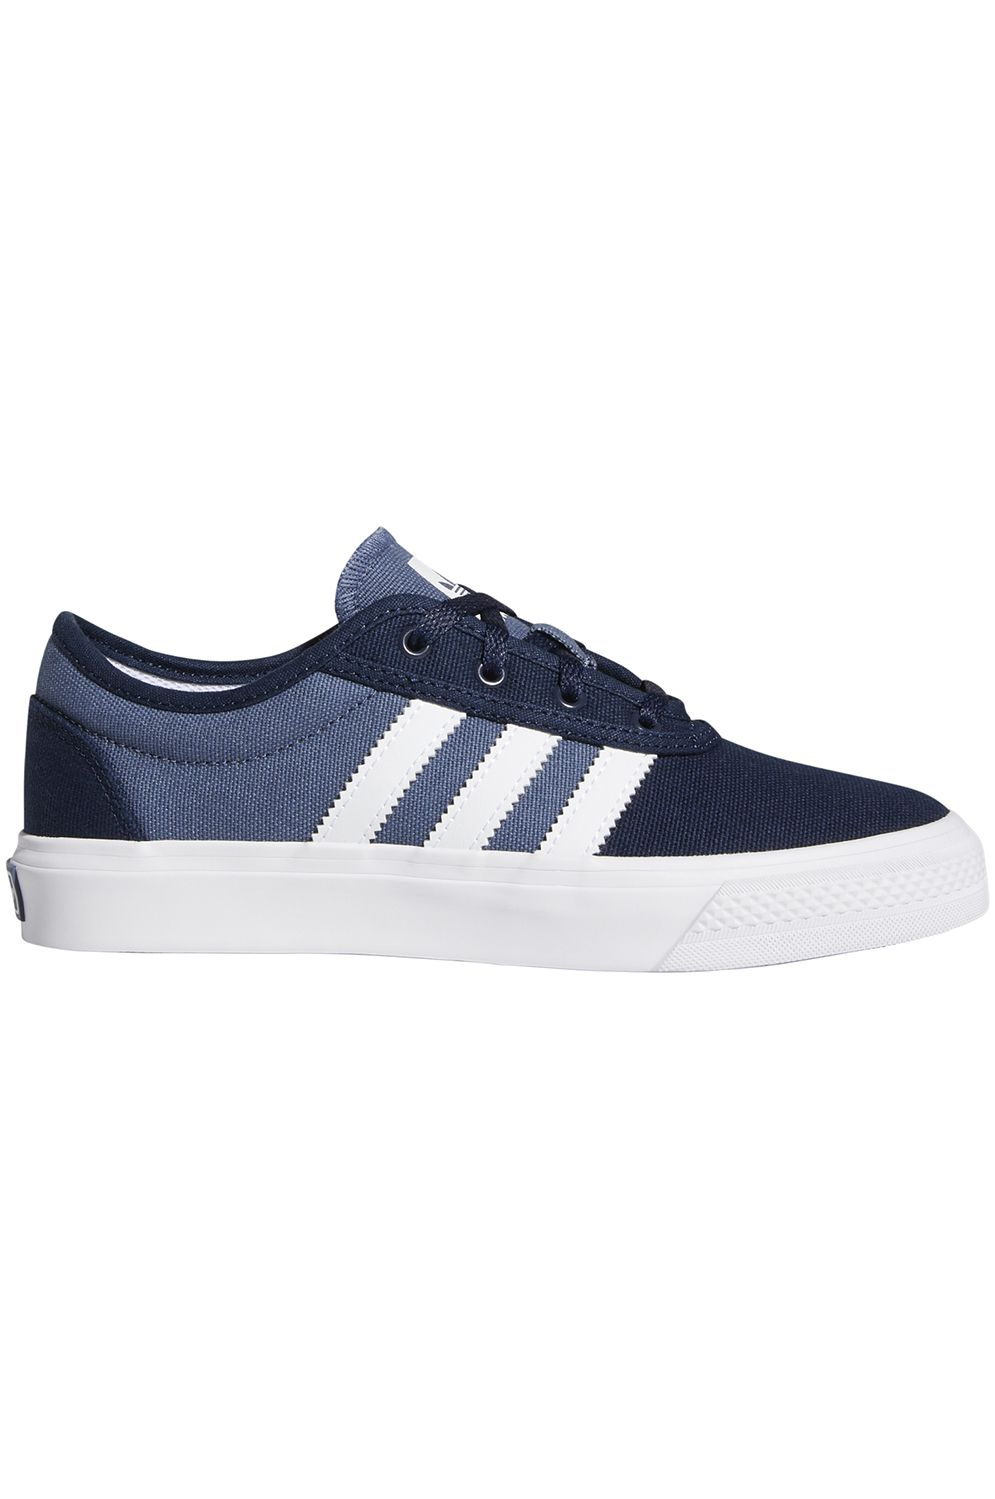 Tenis Adidas ADI-EASE Collegiate Navy/Tech Ink/Ftwr White